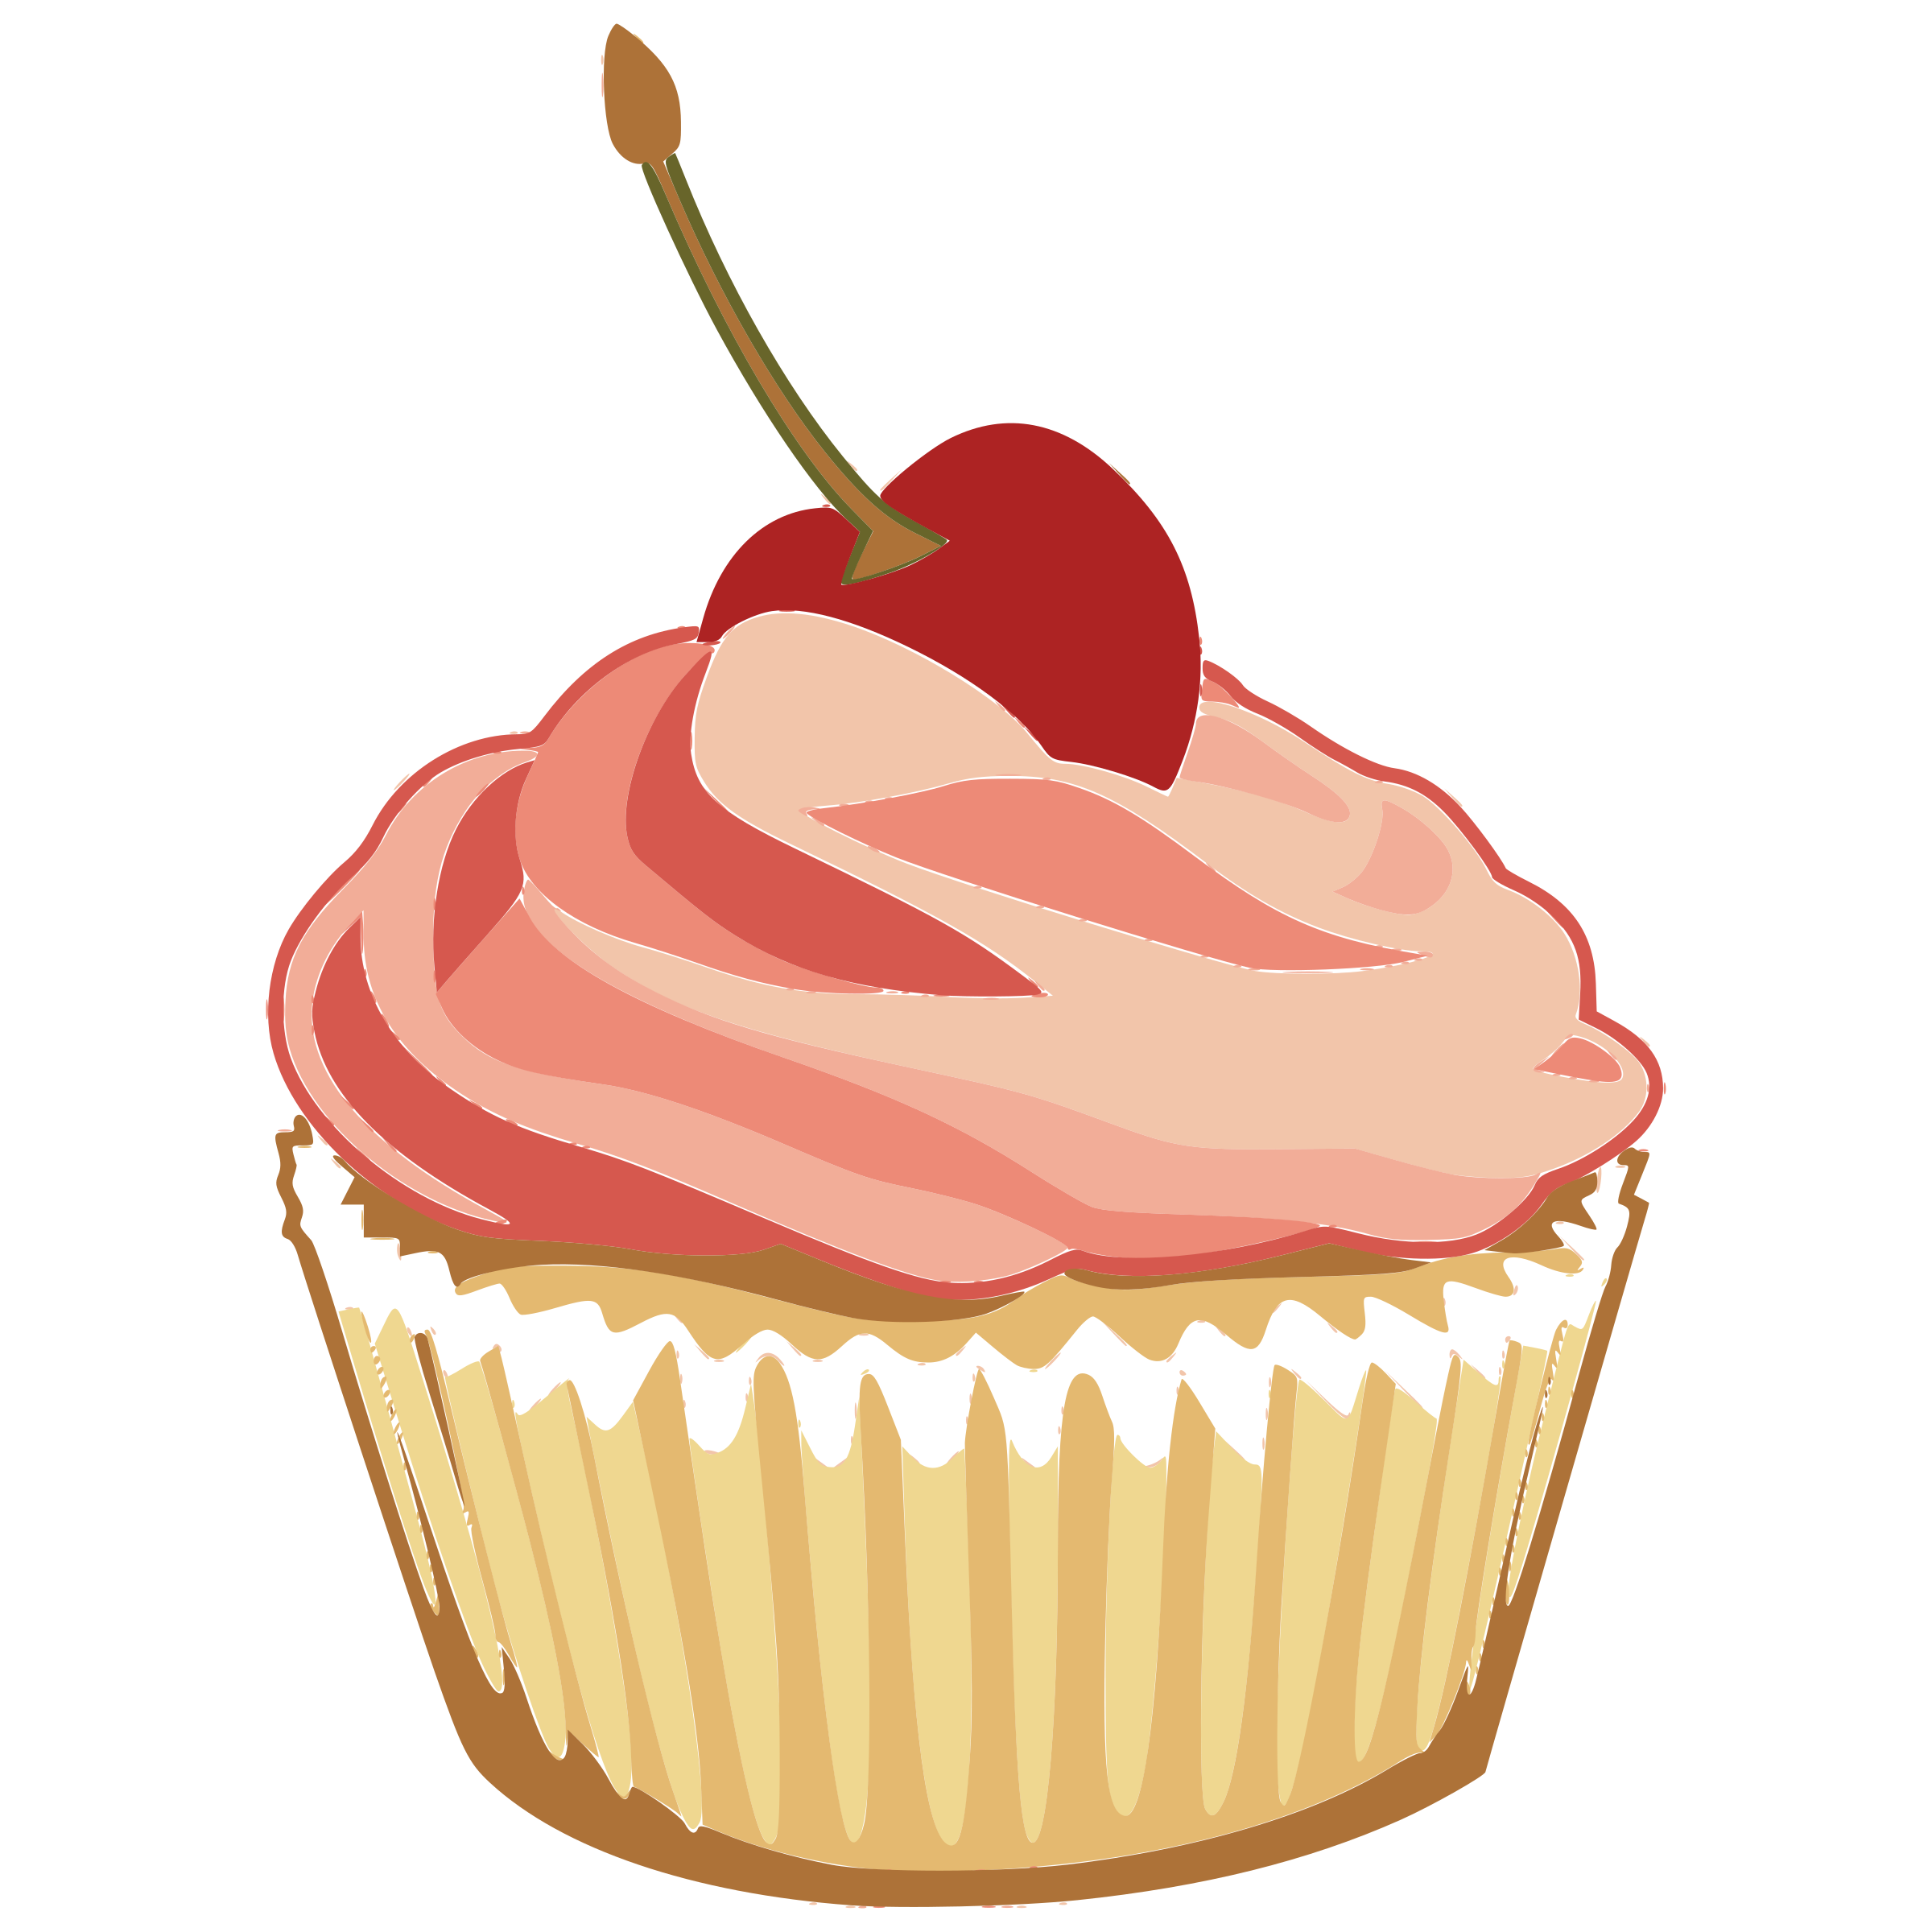 Muffins clipart big cupcake. Muffin image png